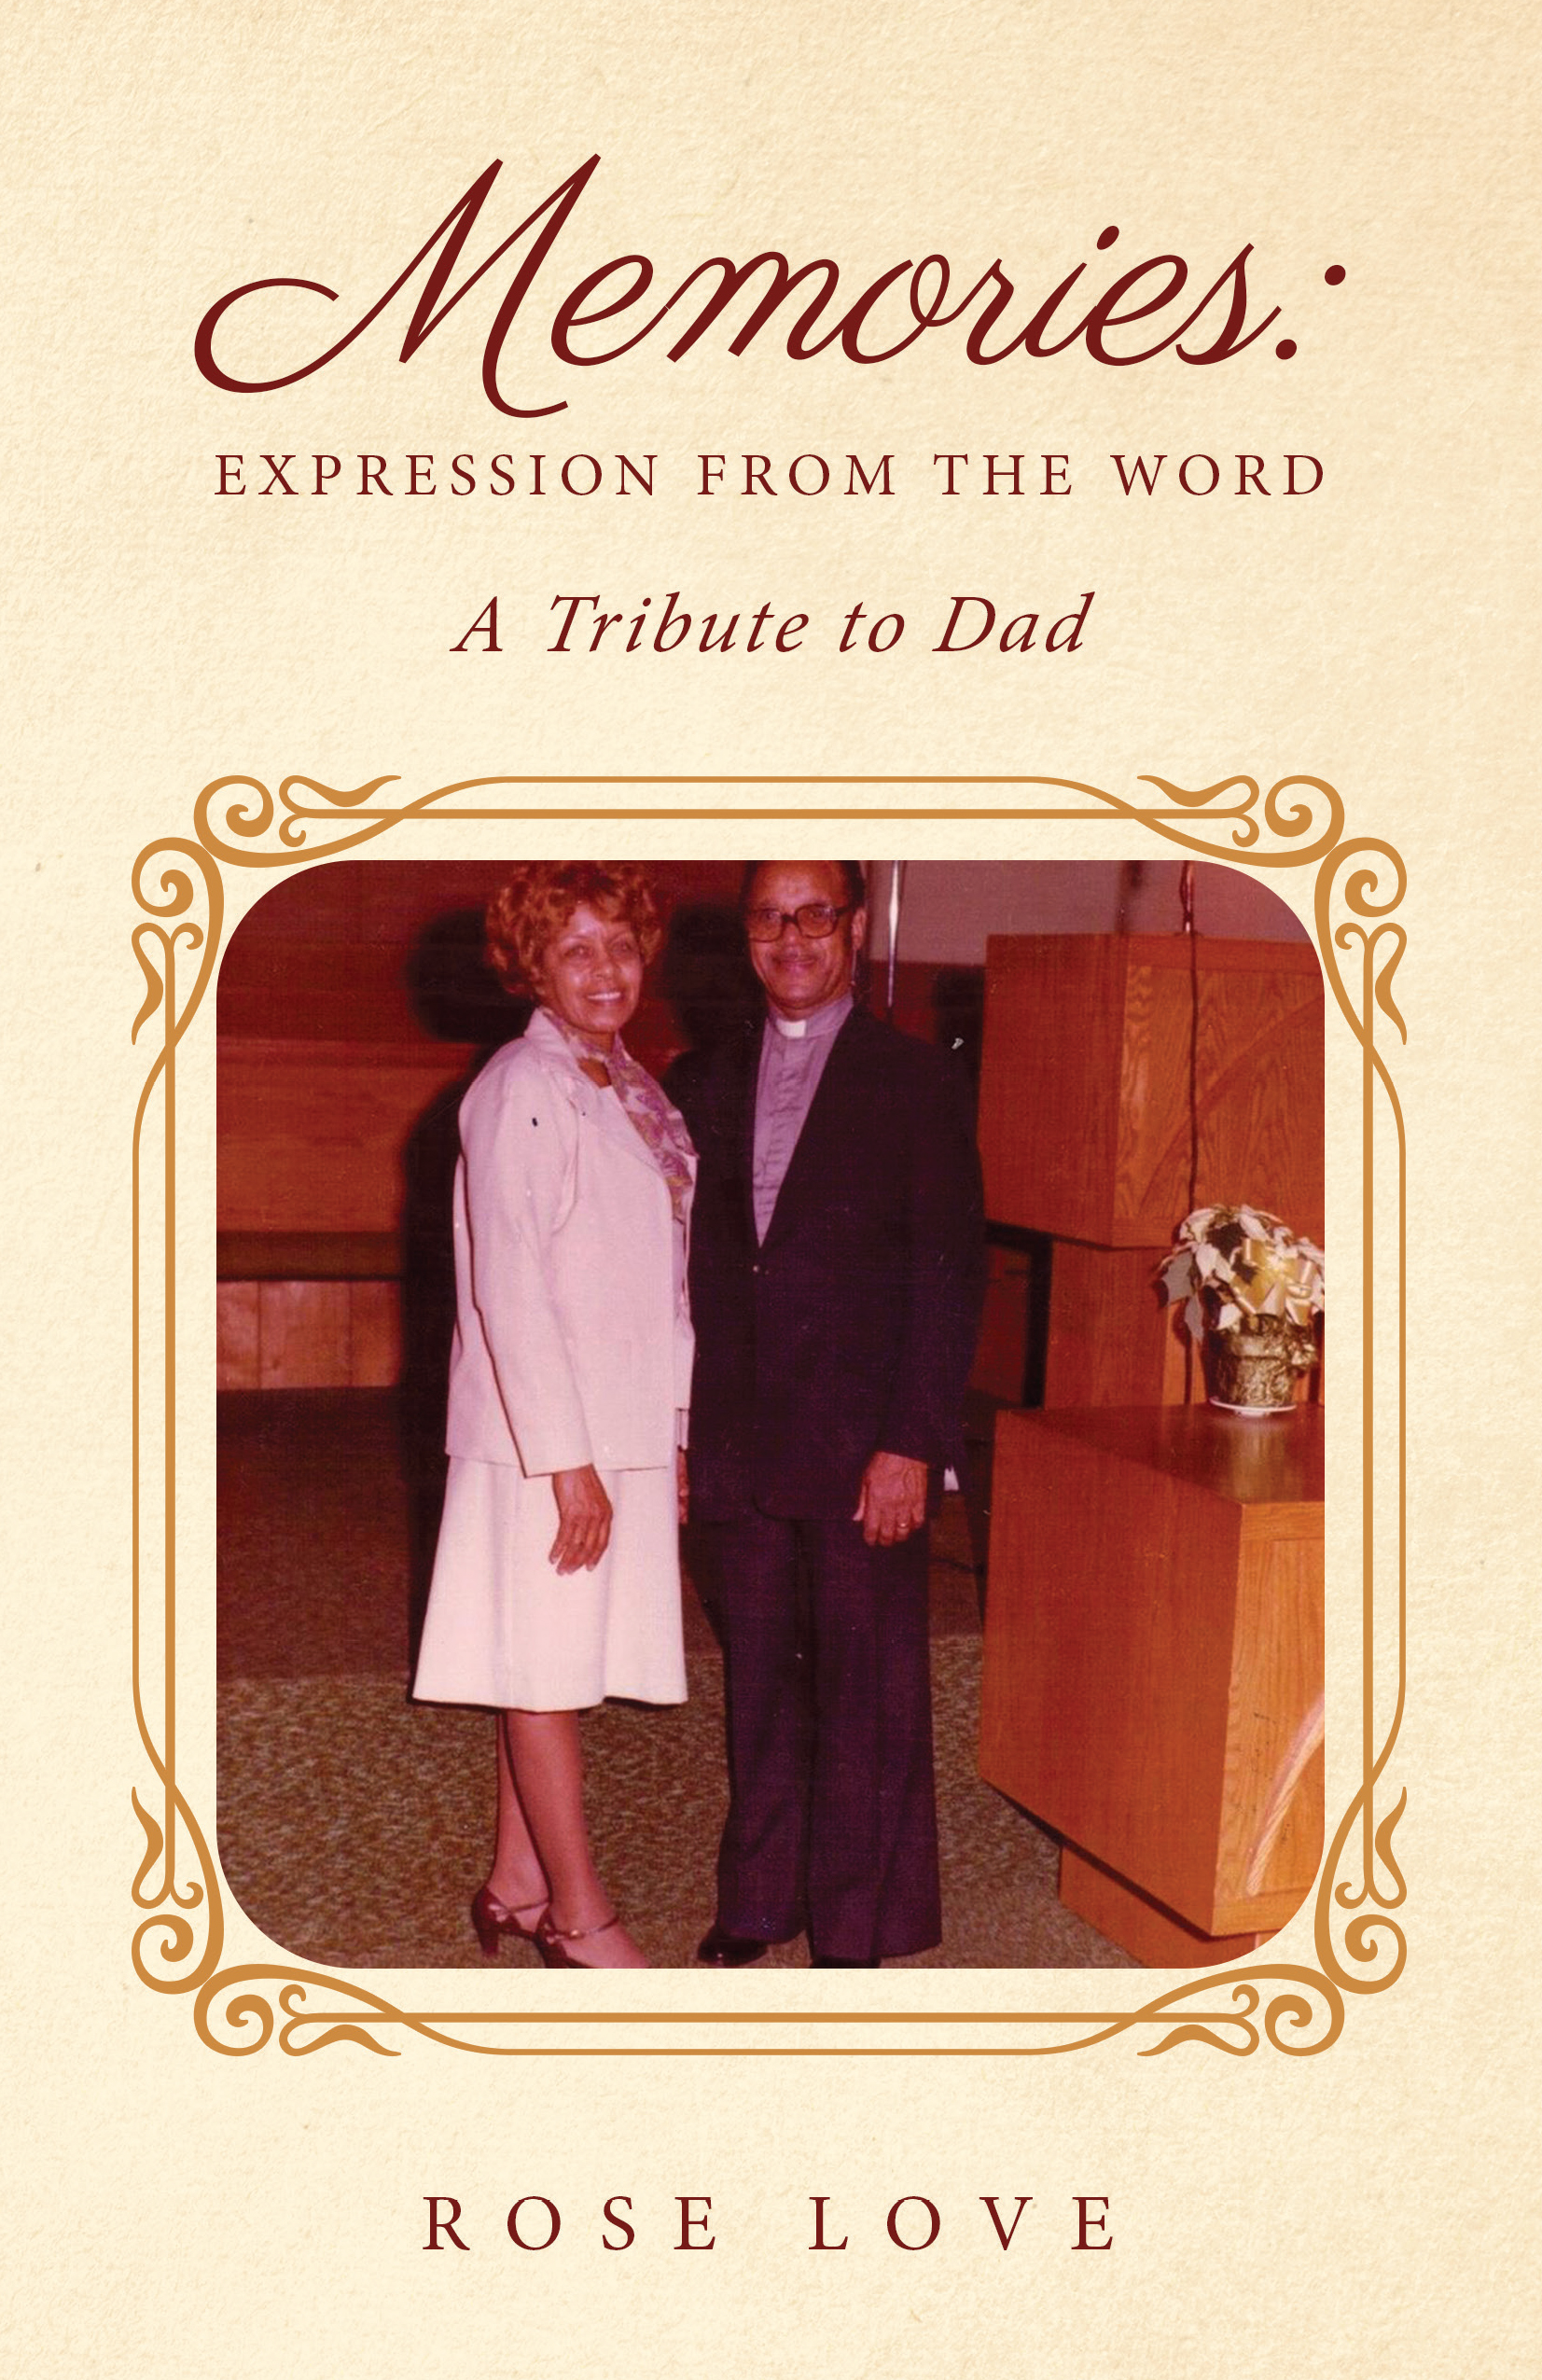 Memories: Expression from the Word A Tribute to Dad by Rose Love Now on Amazon!